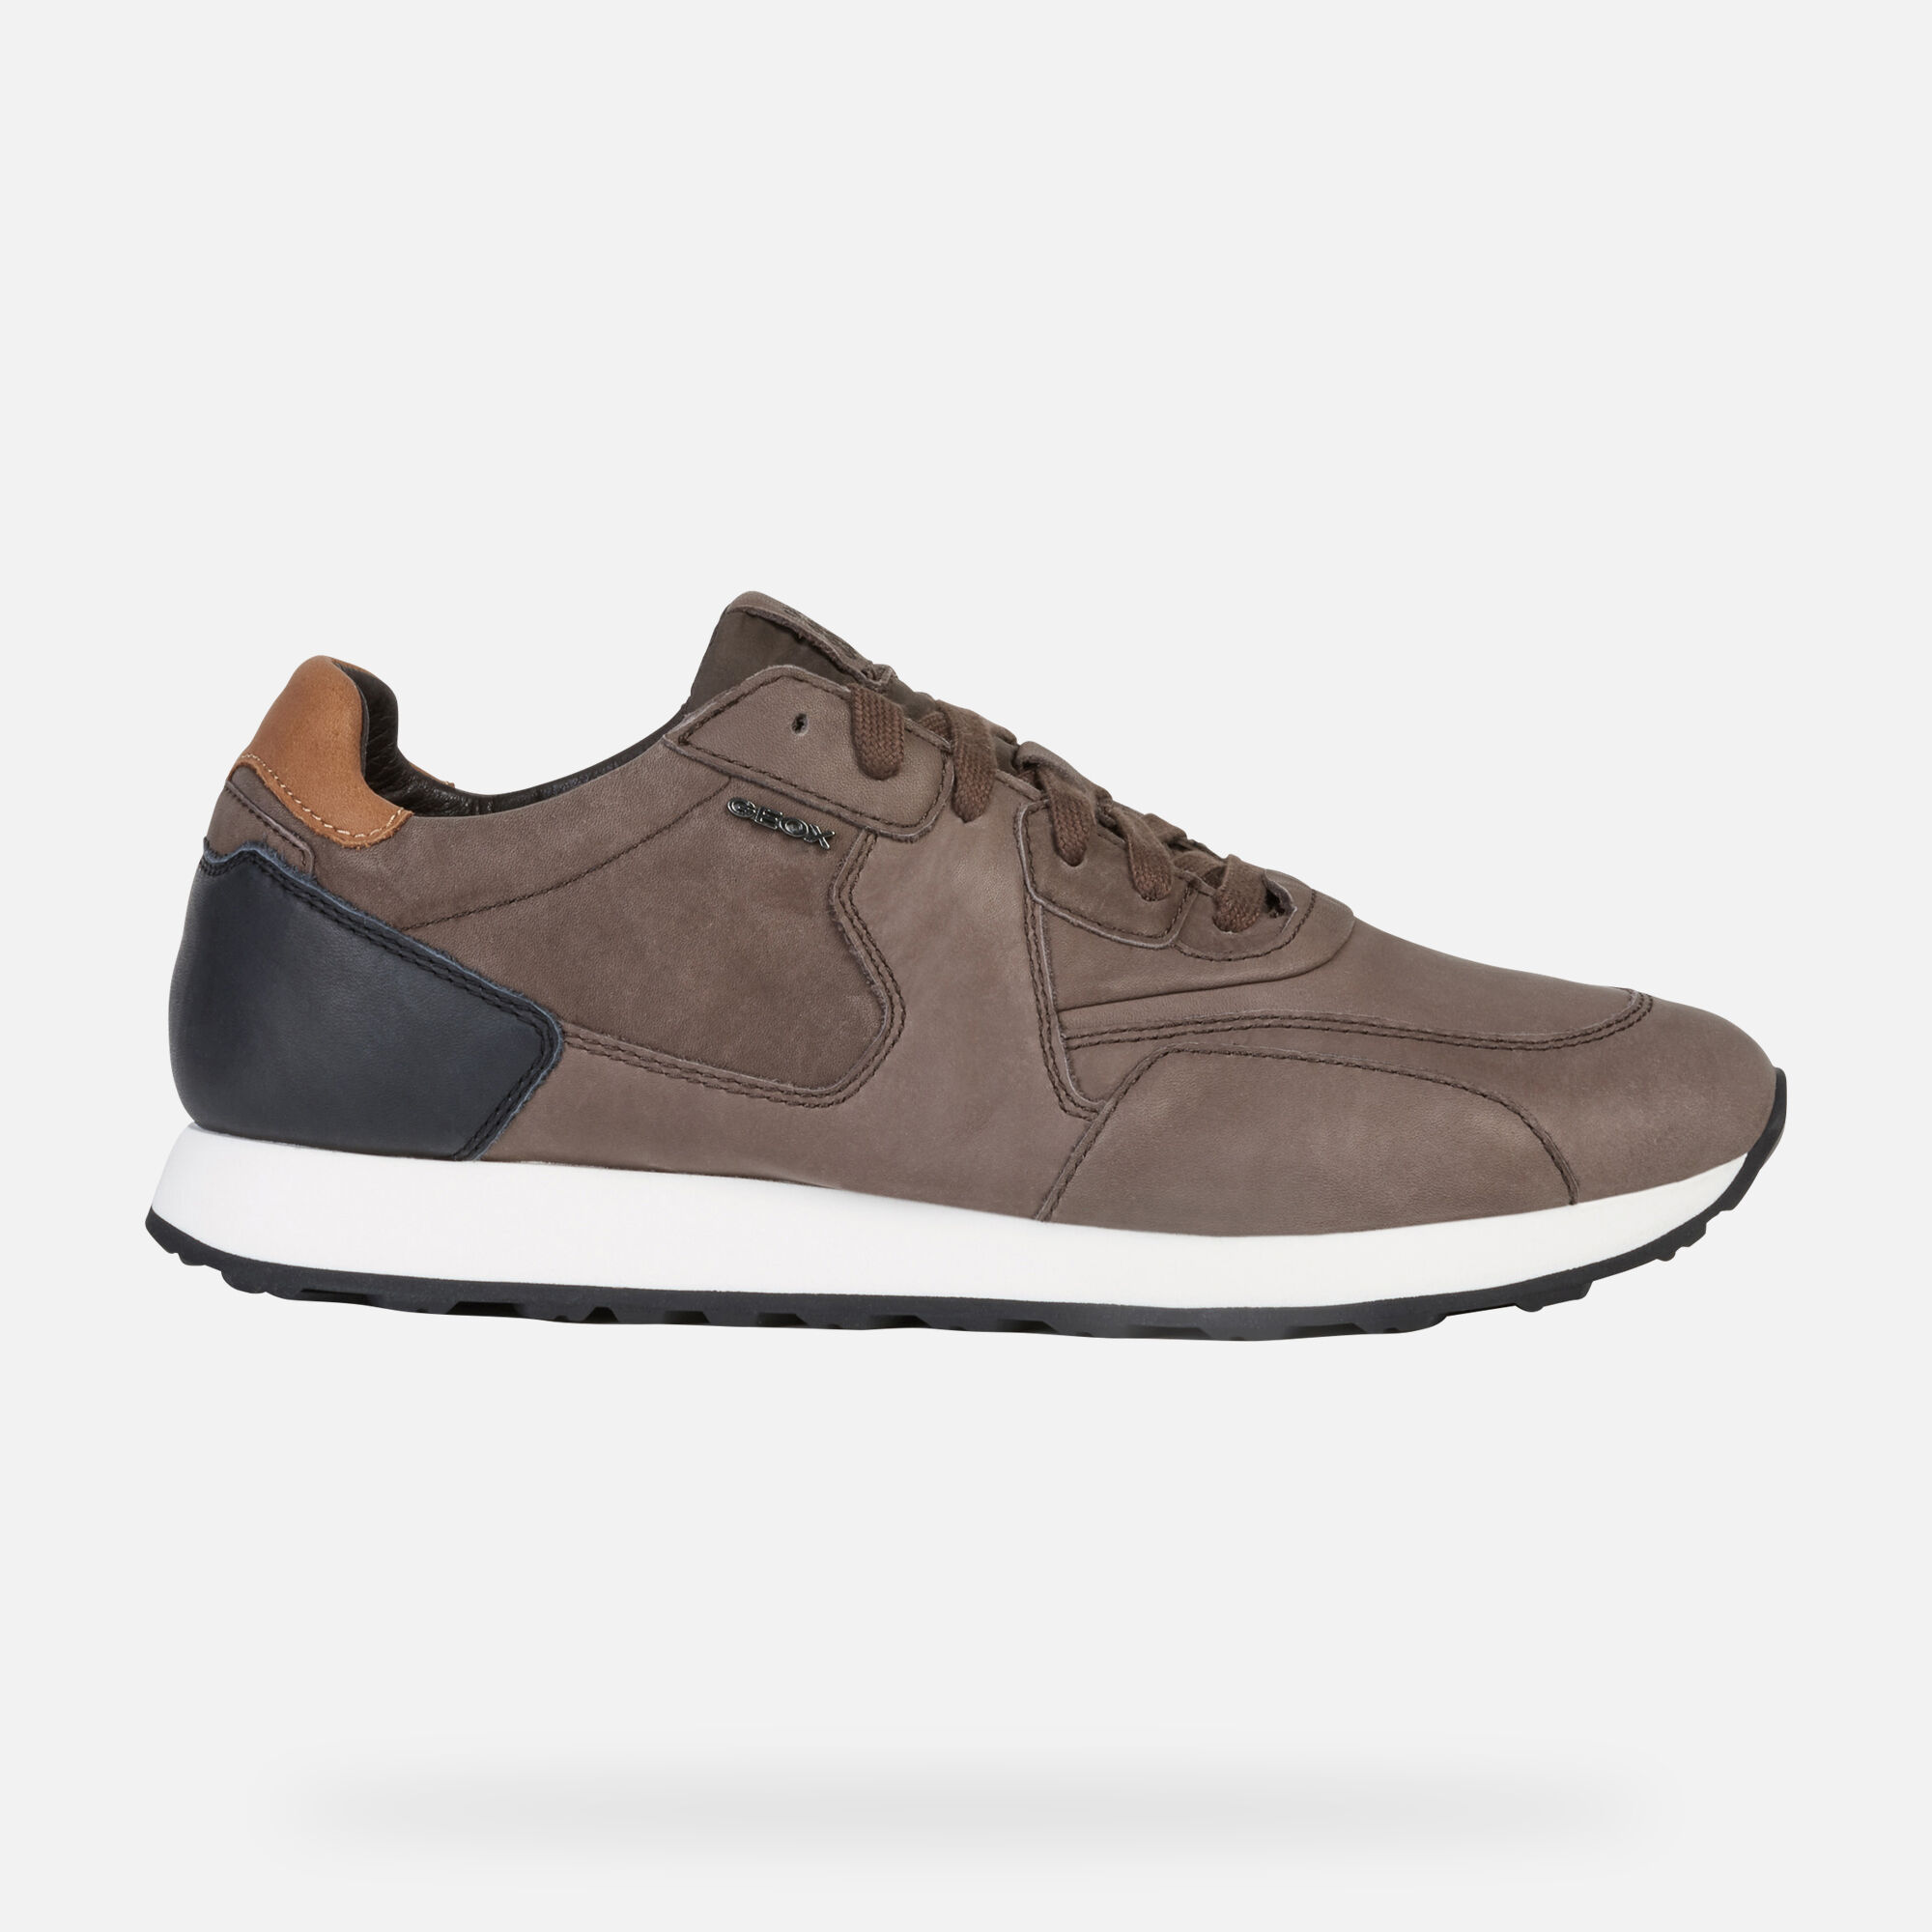 GEOX VINCIT Uomo: Sneakers Basse Caff scuro | GEOX ® | Geox